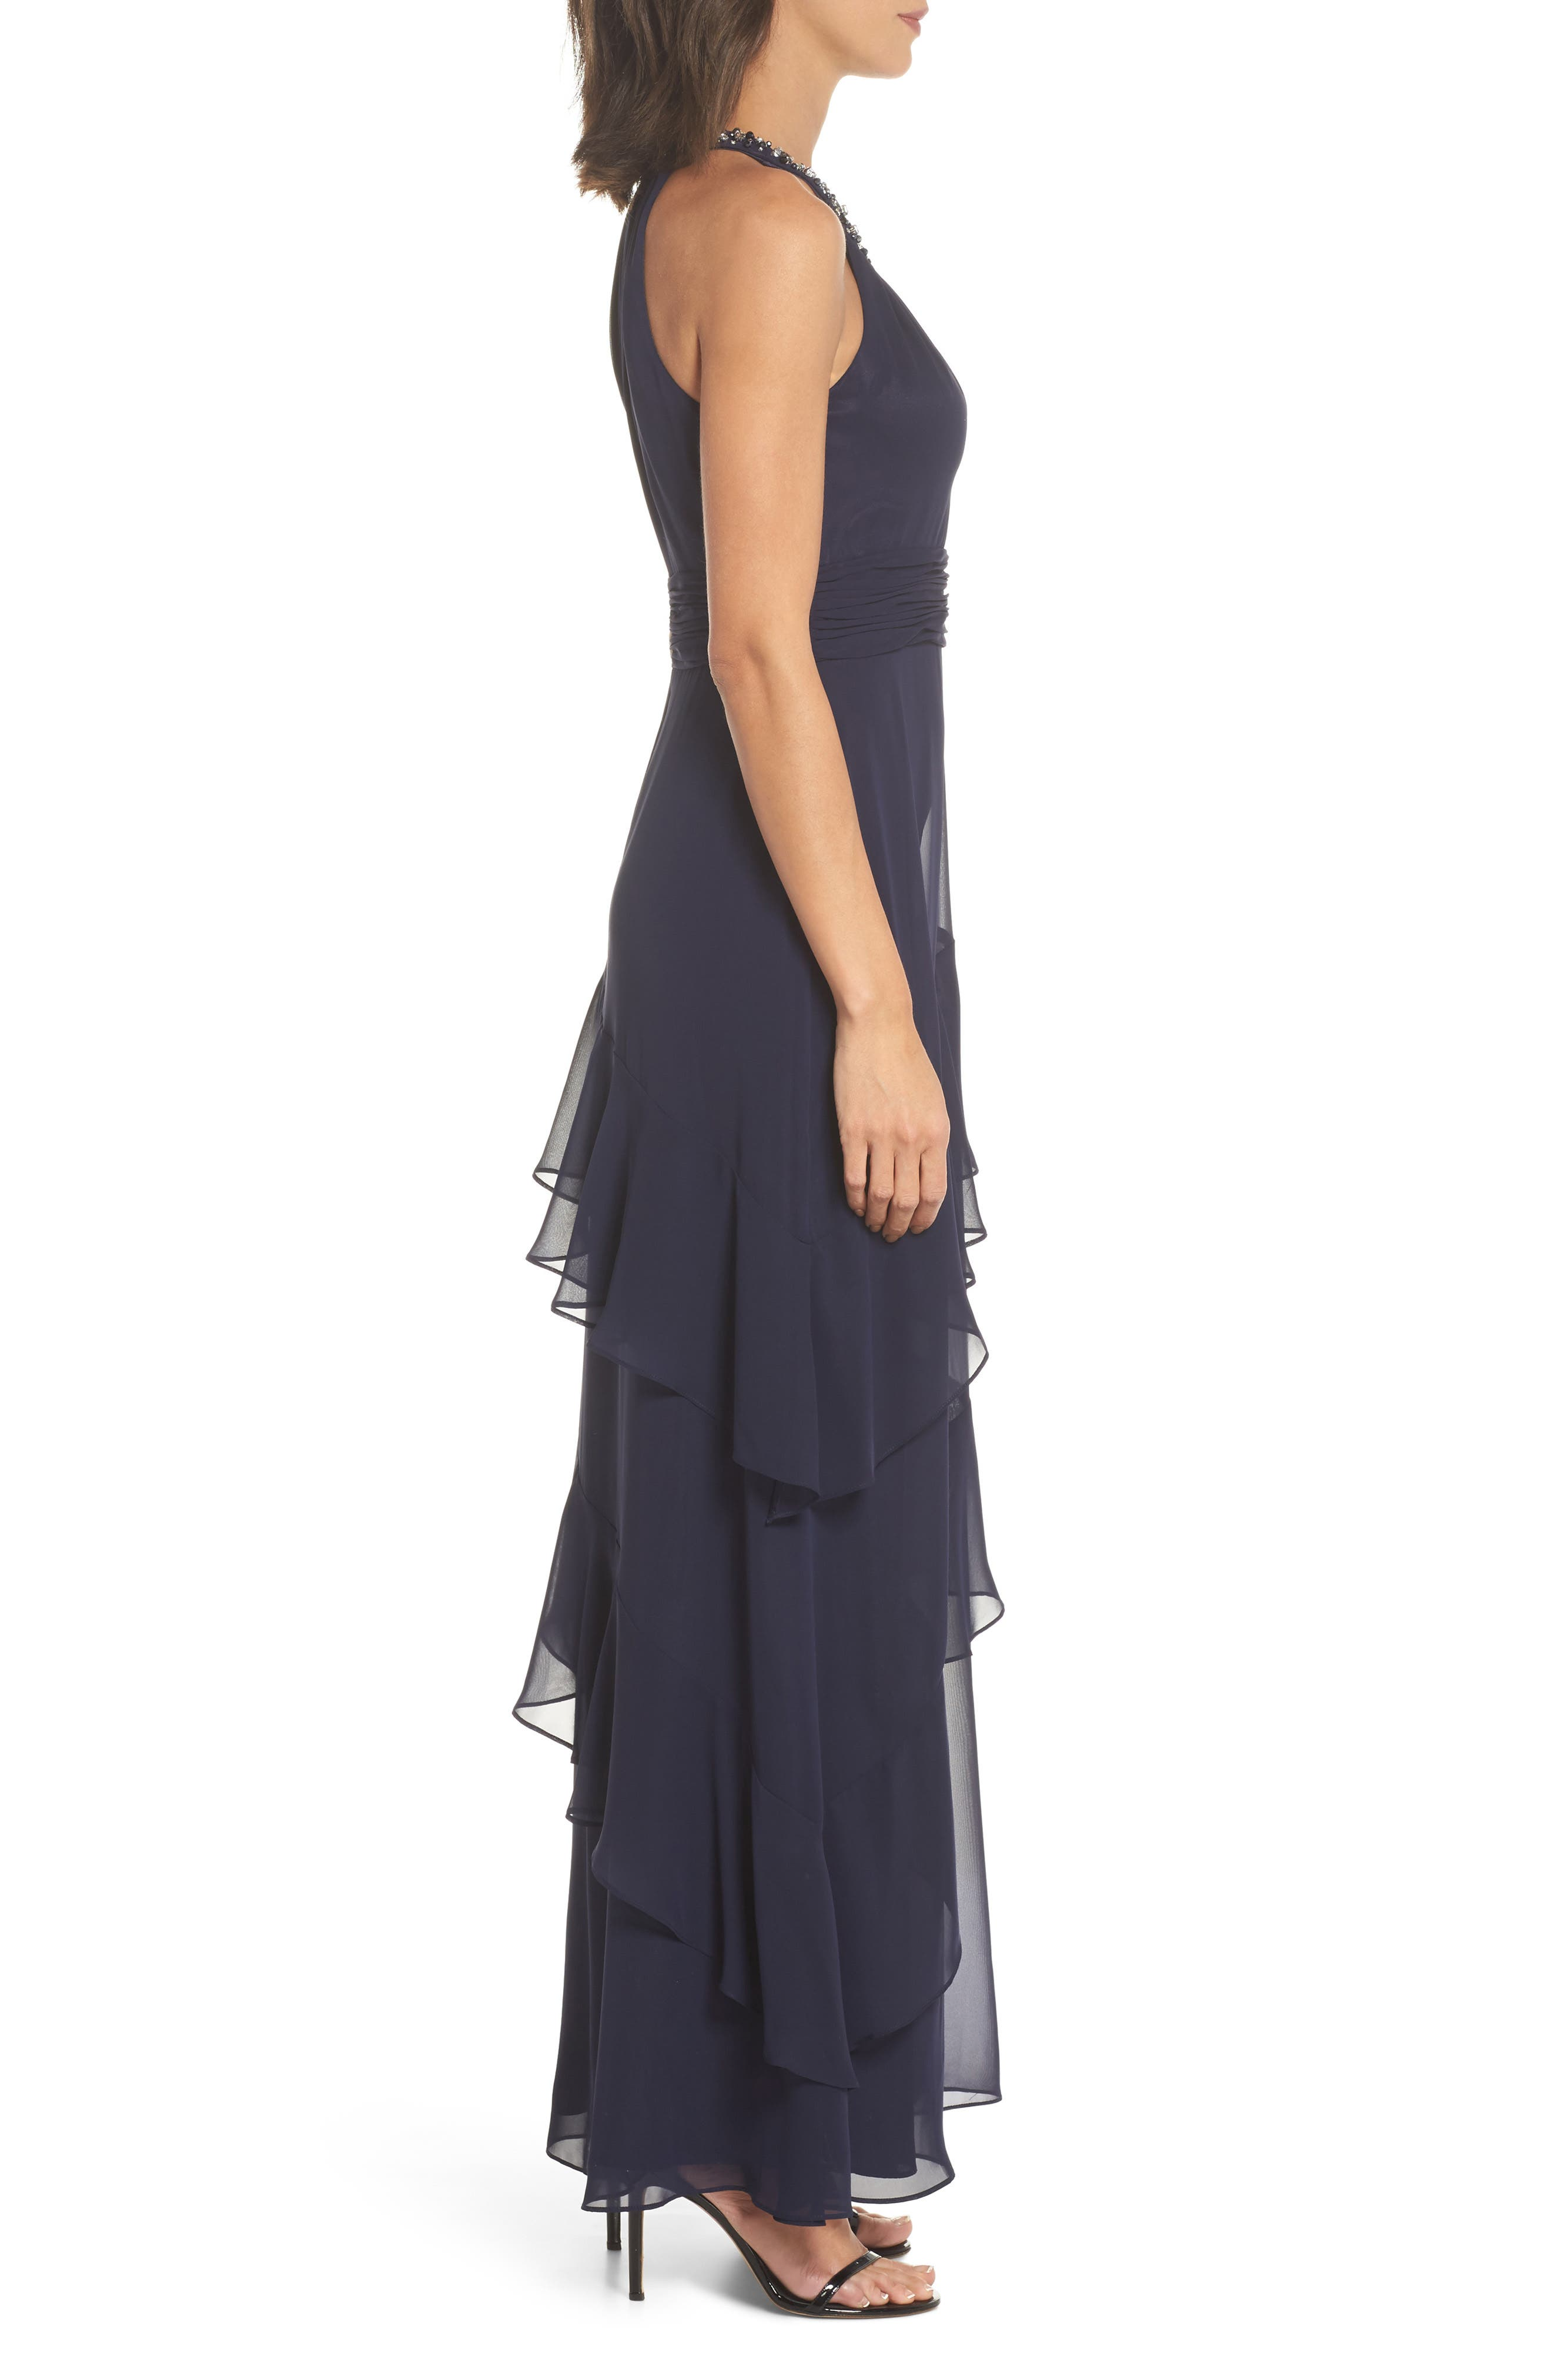 ELIZA J, Beaded Halter Tiered Chiffon Gown, Alternate thumbnail 4, color, NAVY